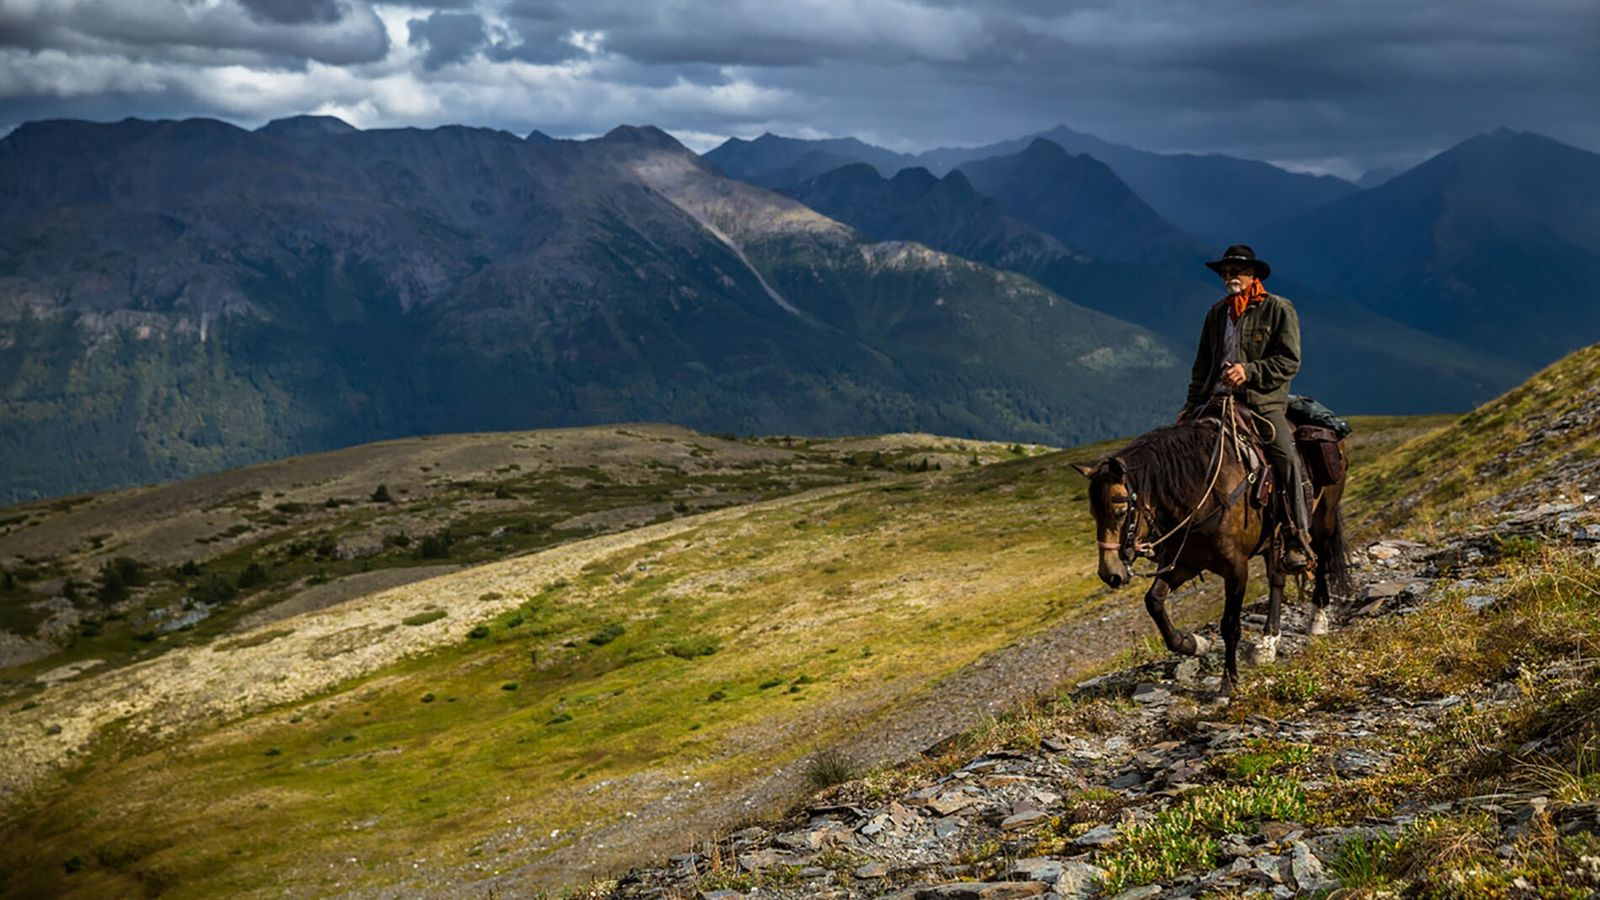 Muskwa-Kechika is one of the largest wilderness areas in North America, with forests, mountains, lakes, rivers, waterfalls, hot ...